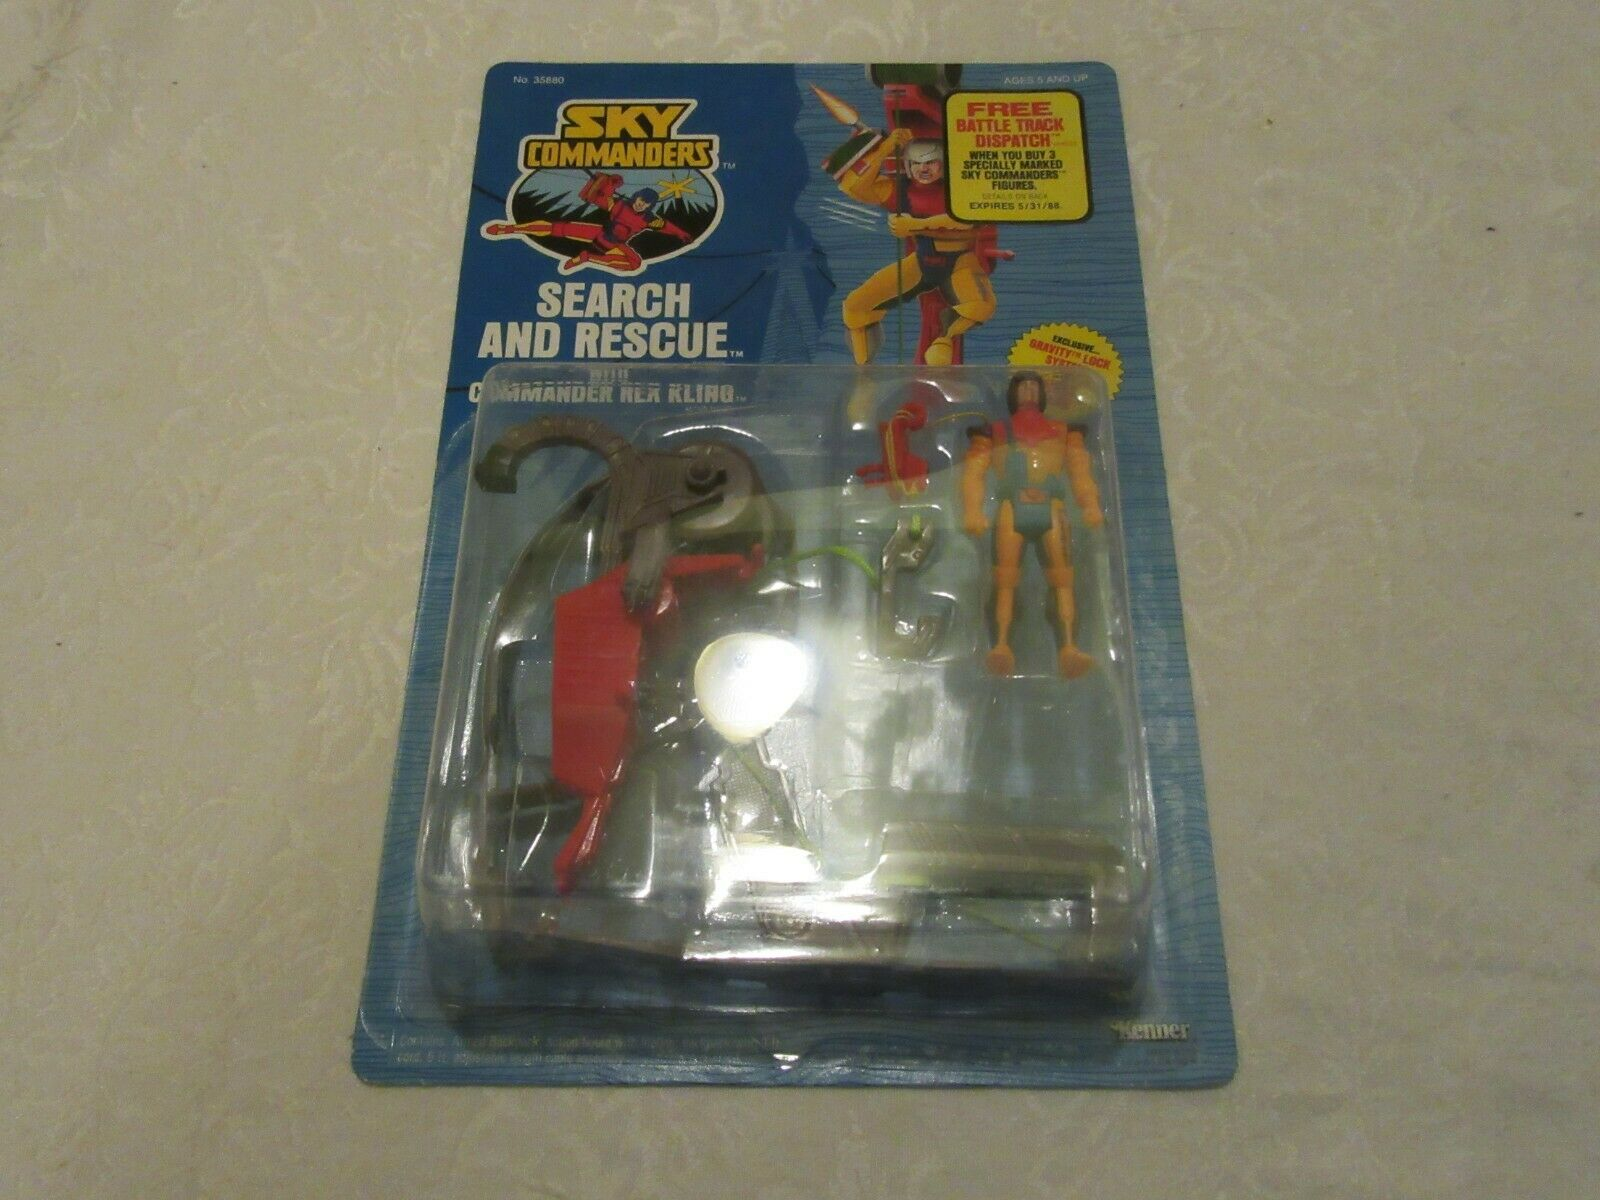 Kenner Sky Commanders Search & Rescue Commander Rex Kling 1987 Action Figure